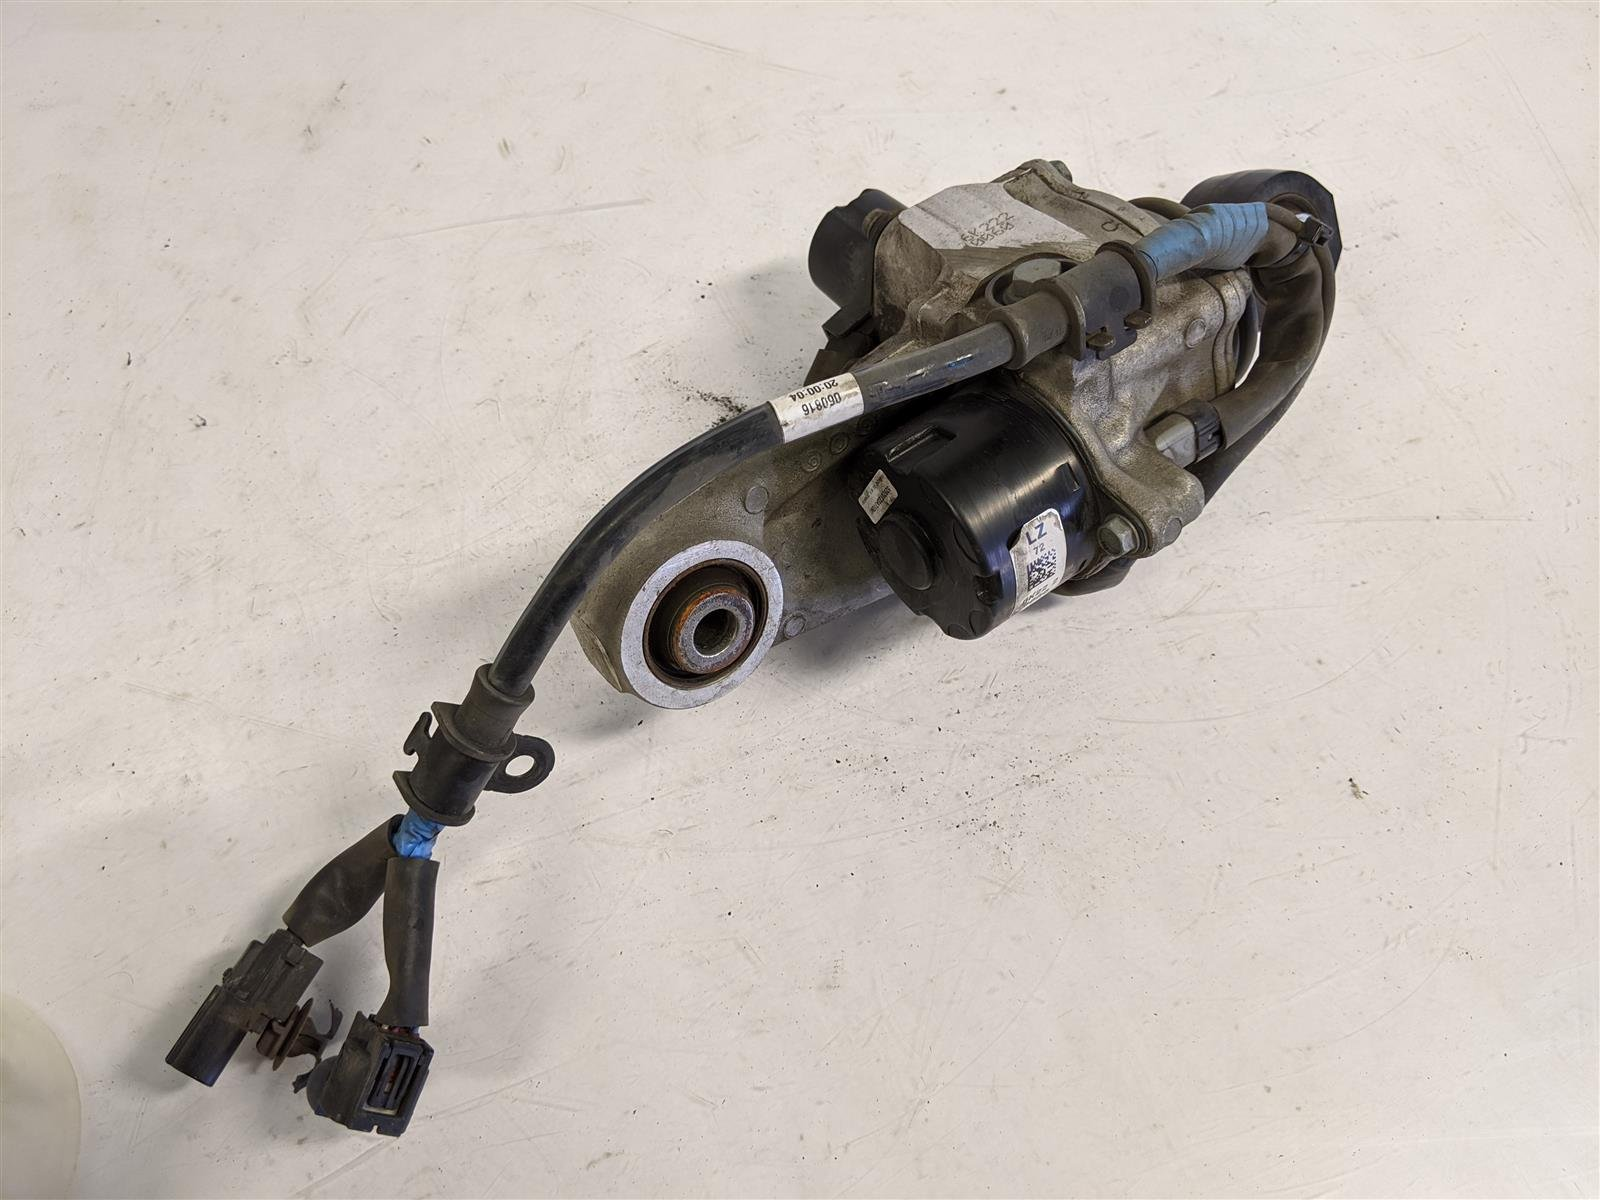 2017 Acura TLX Rear Driver Actuator Arm Replacement